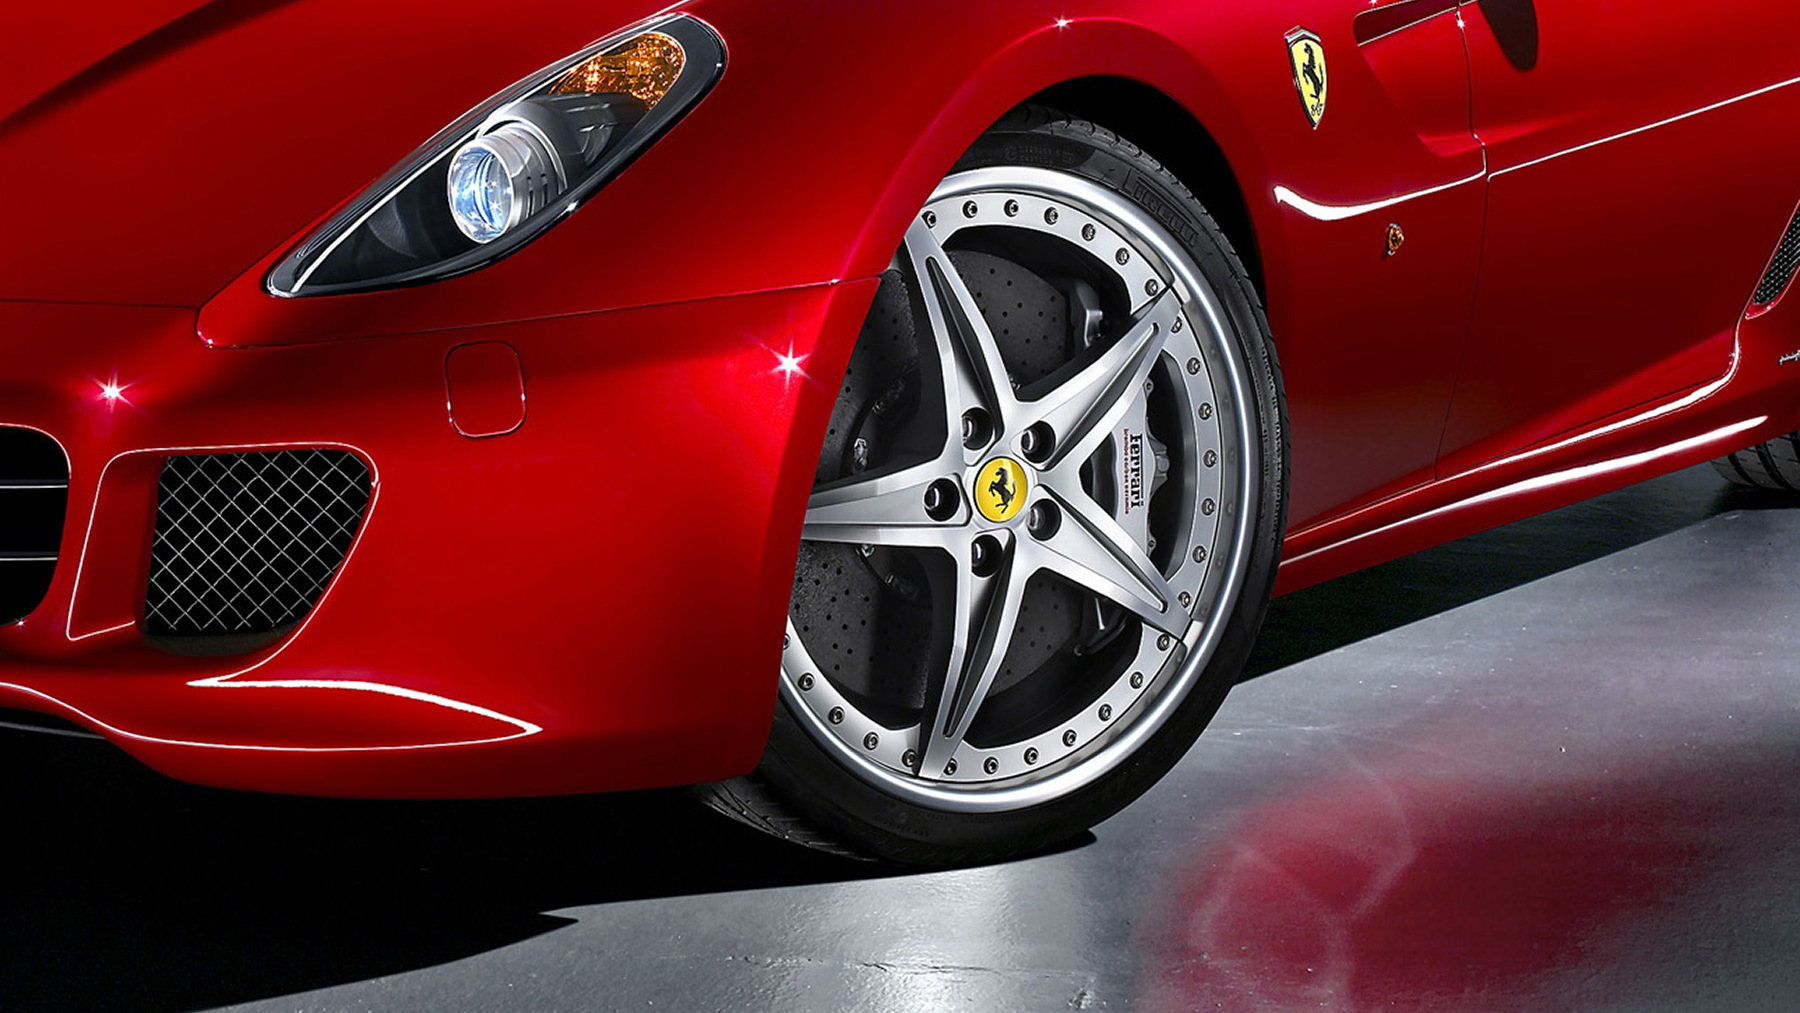 2009 ferrari 599 gtb hgte package 2